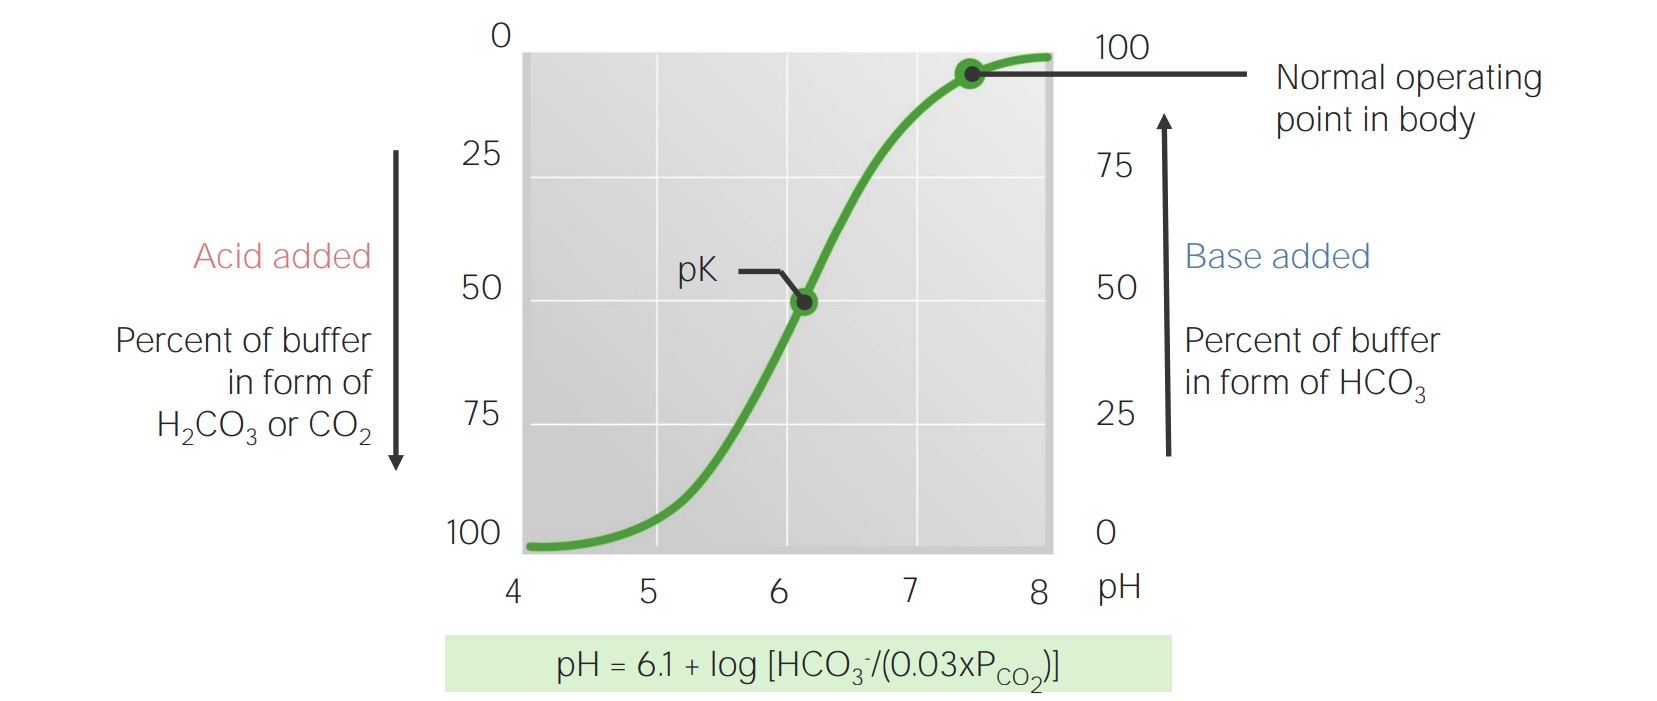 Titration curve for bicarbonate in the blood